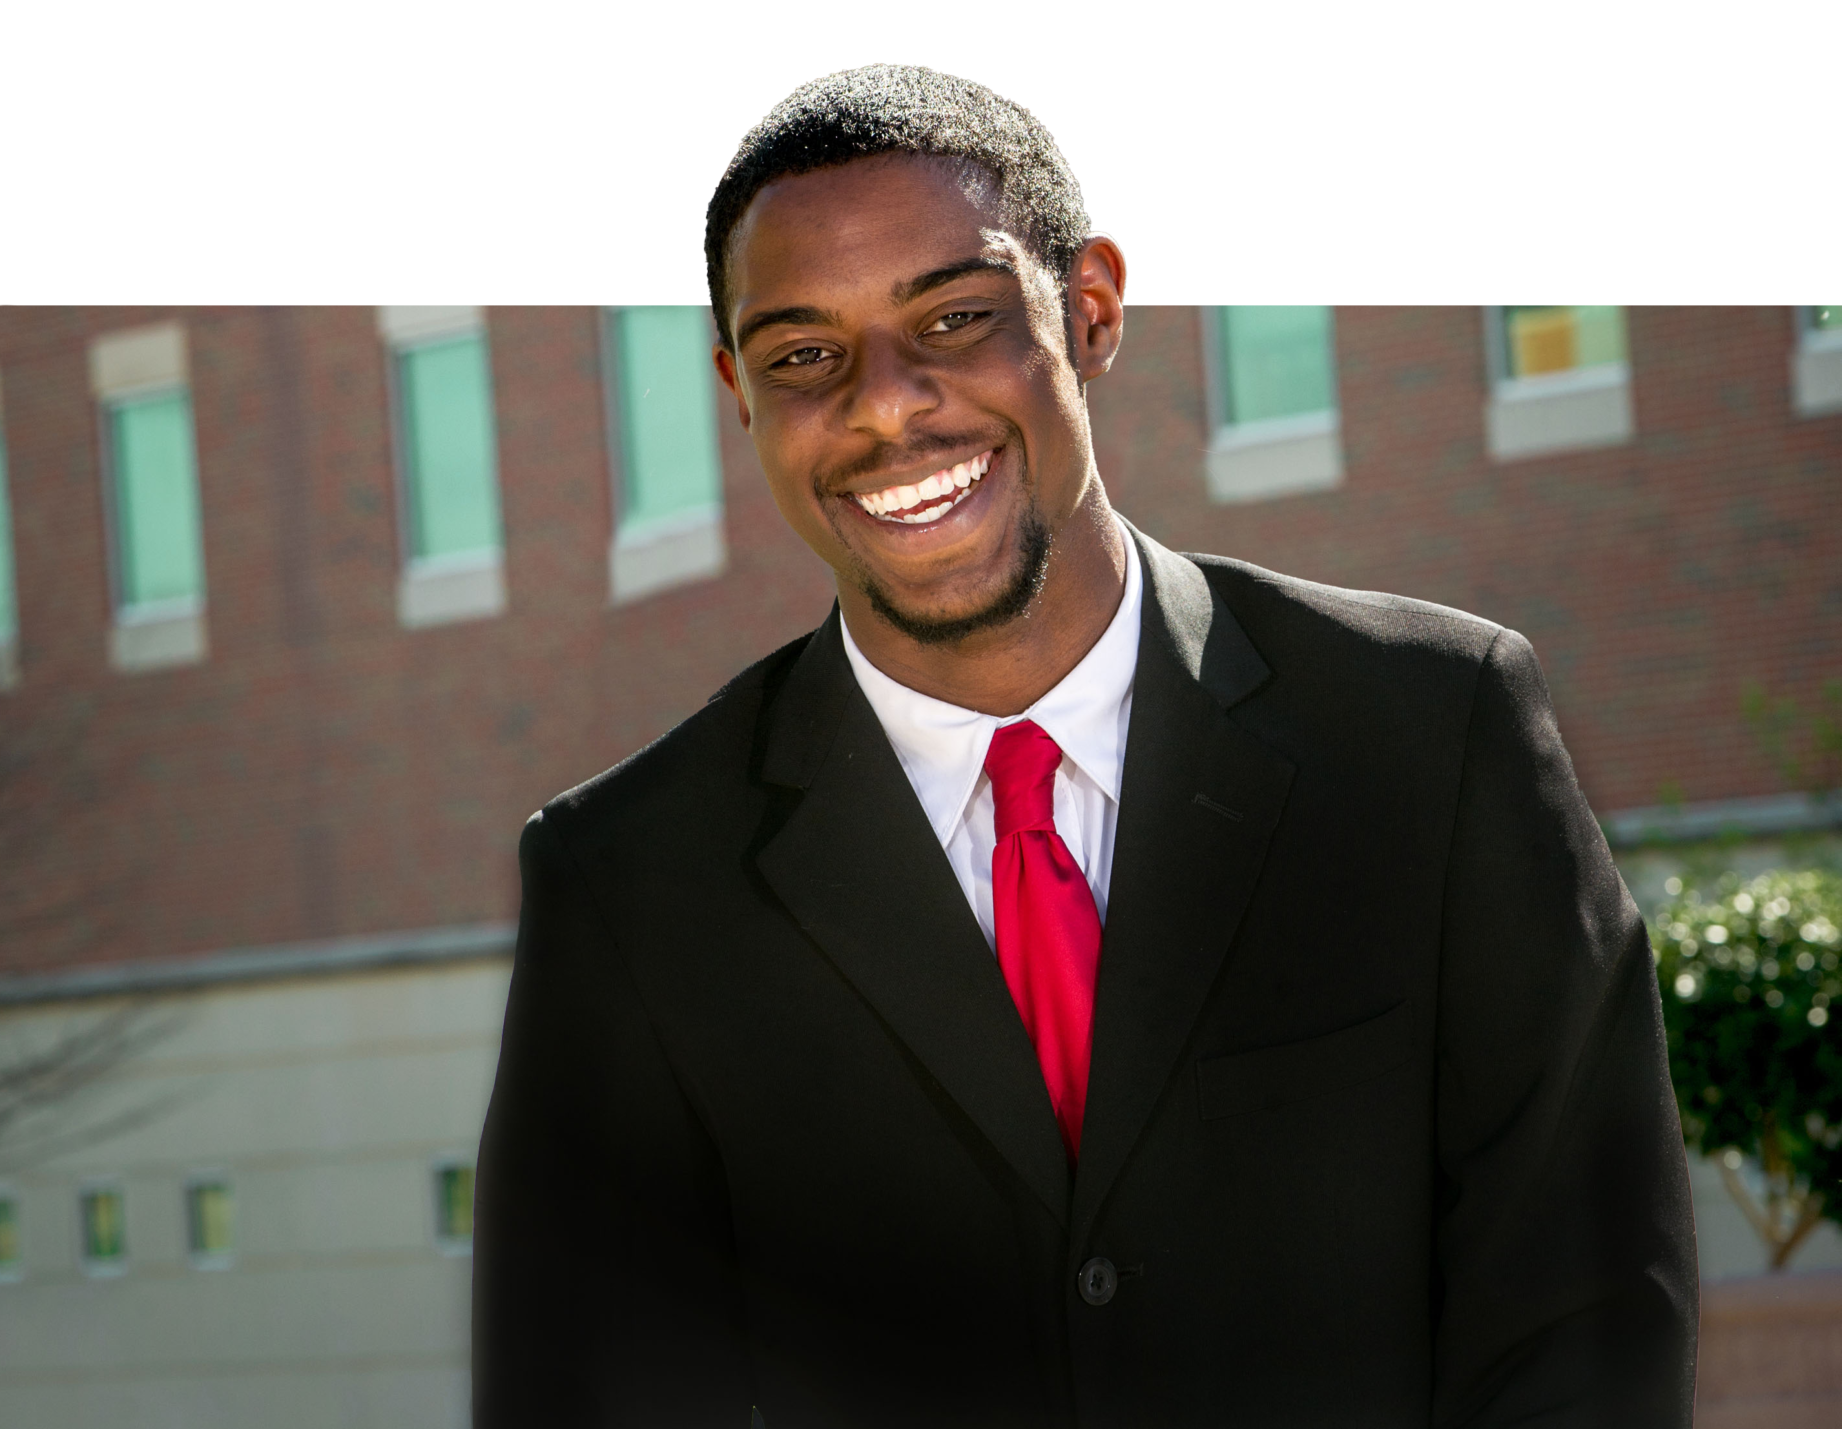 Student dressed professional smiling at the camera.